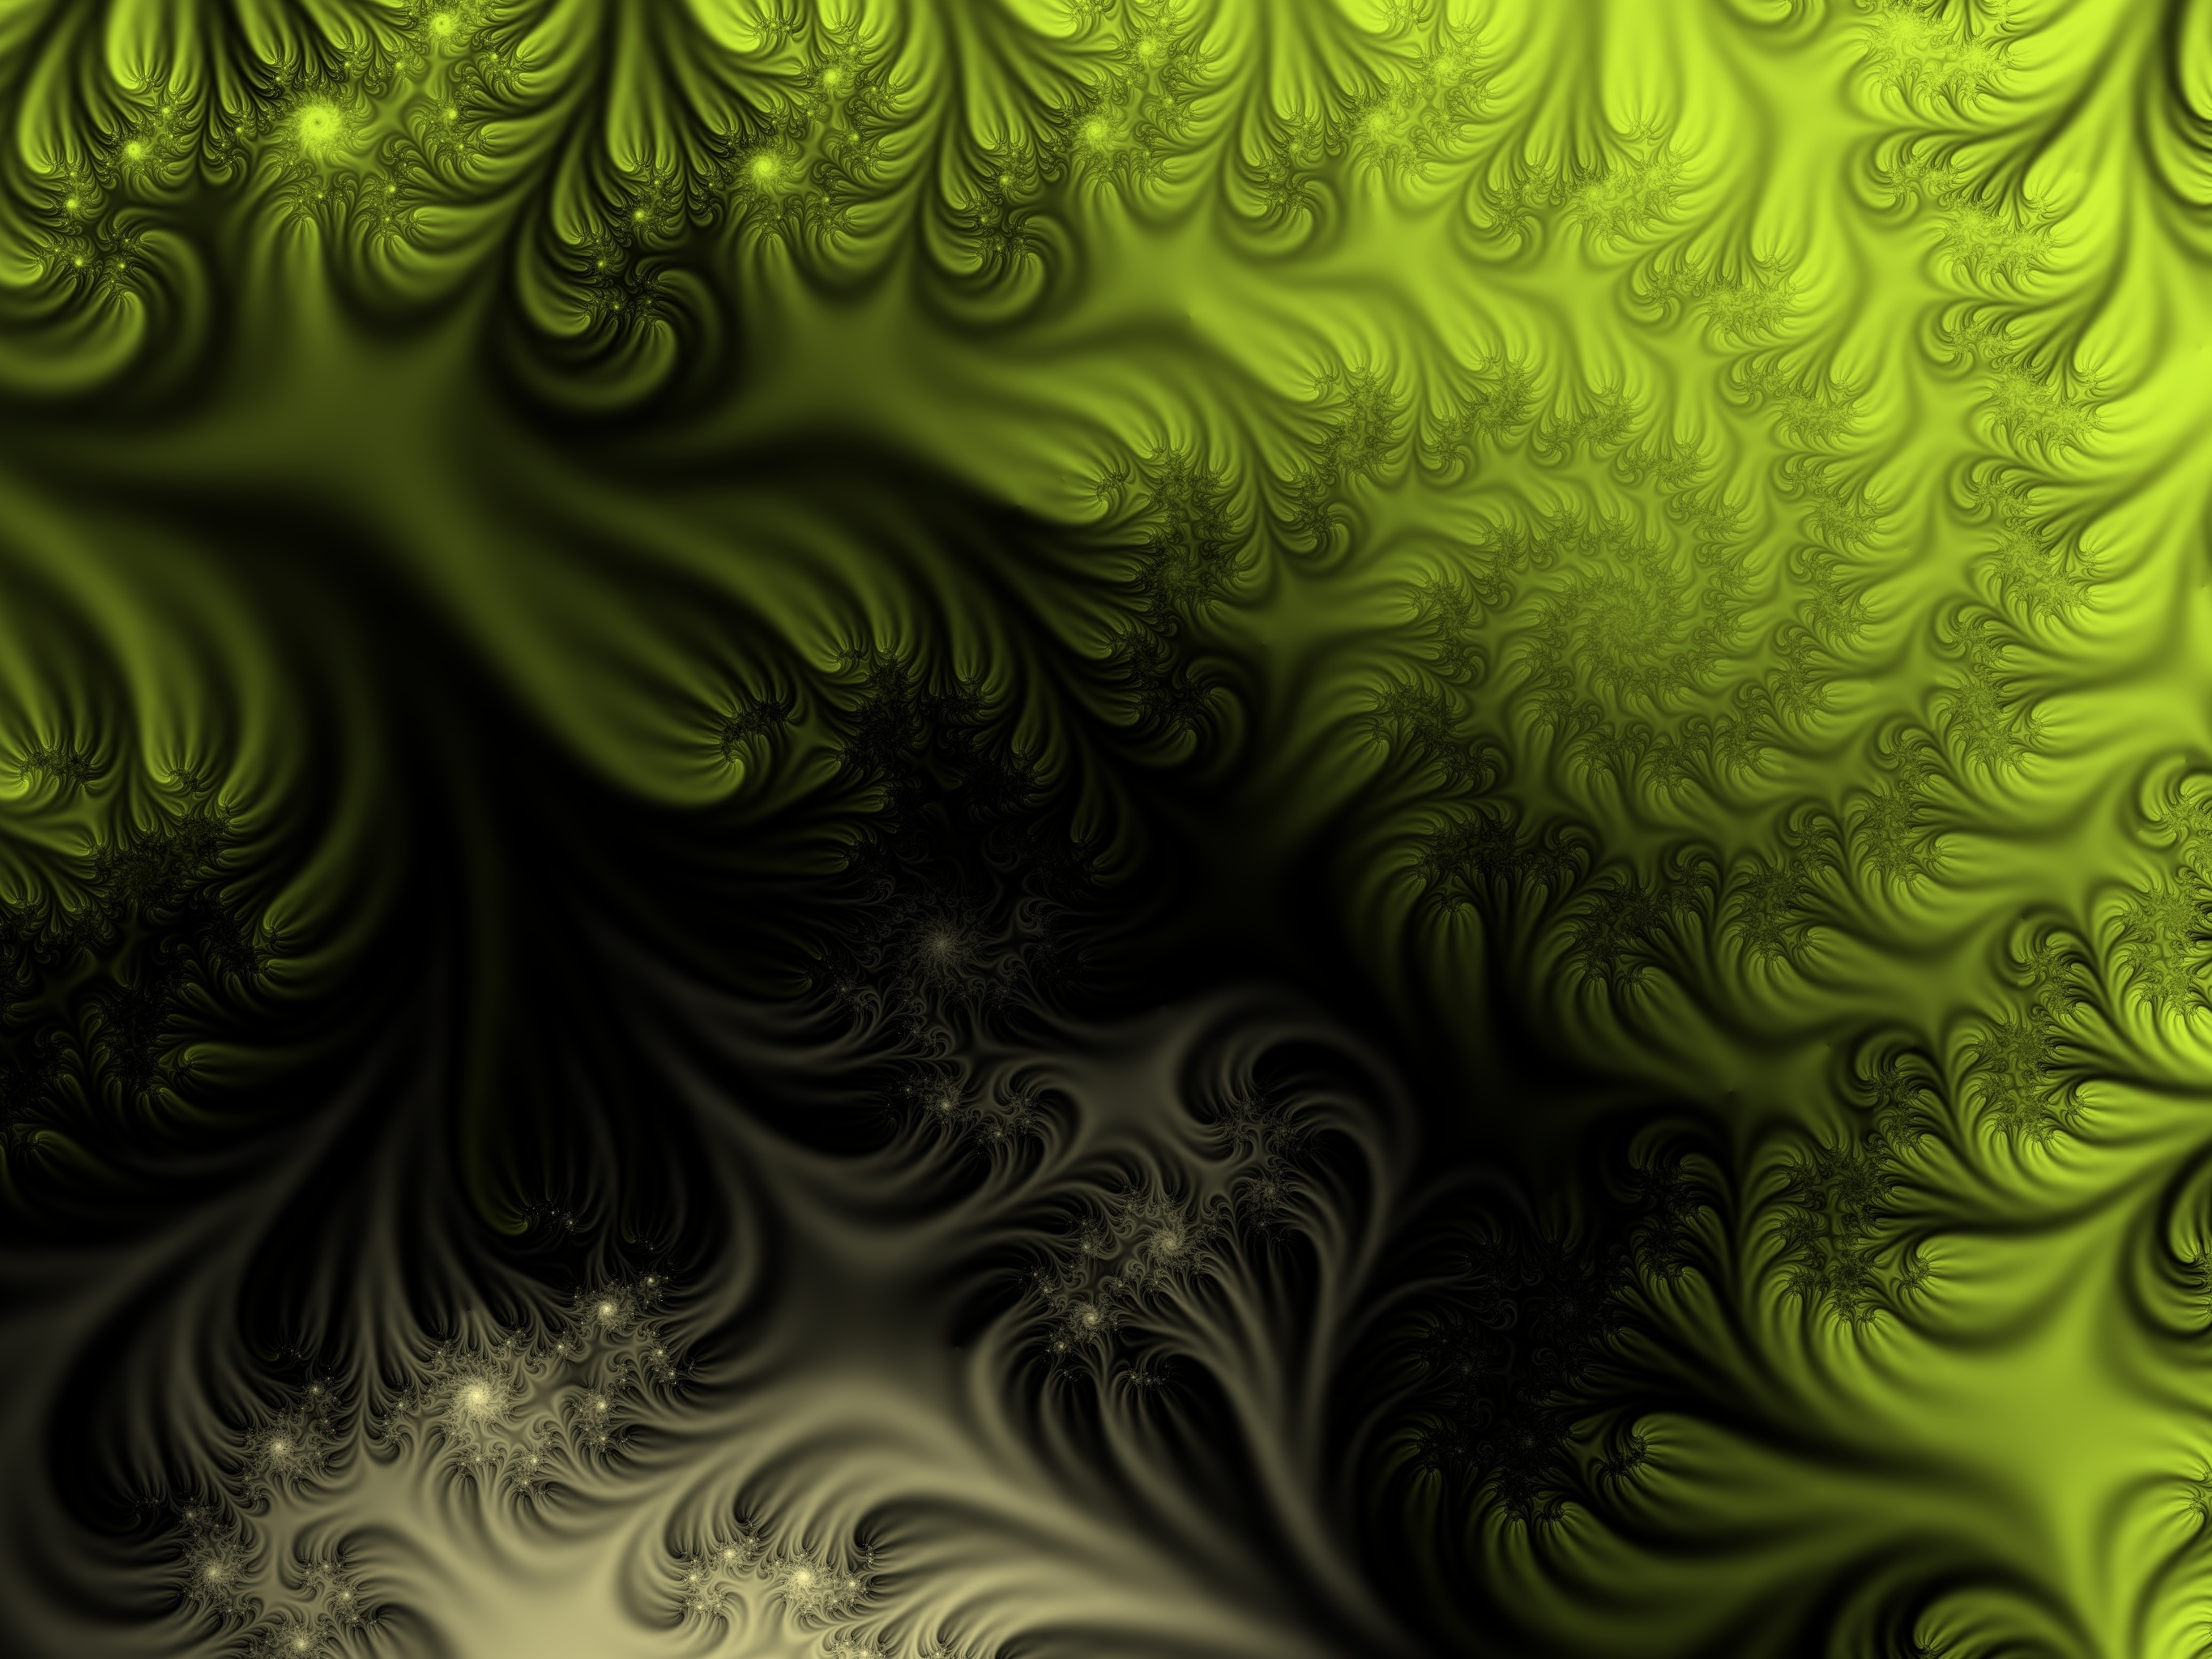 72465 download wallpaper Abstract, Patterns screensavers and pictures for free